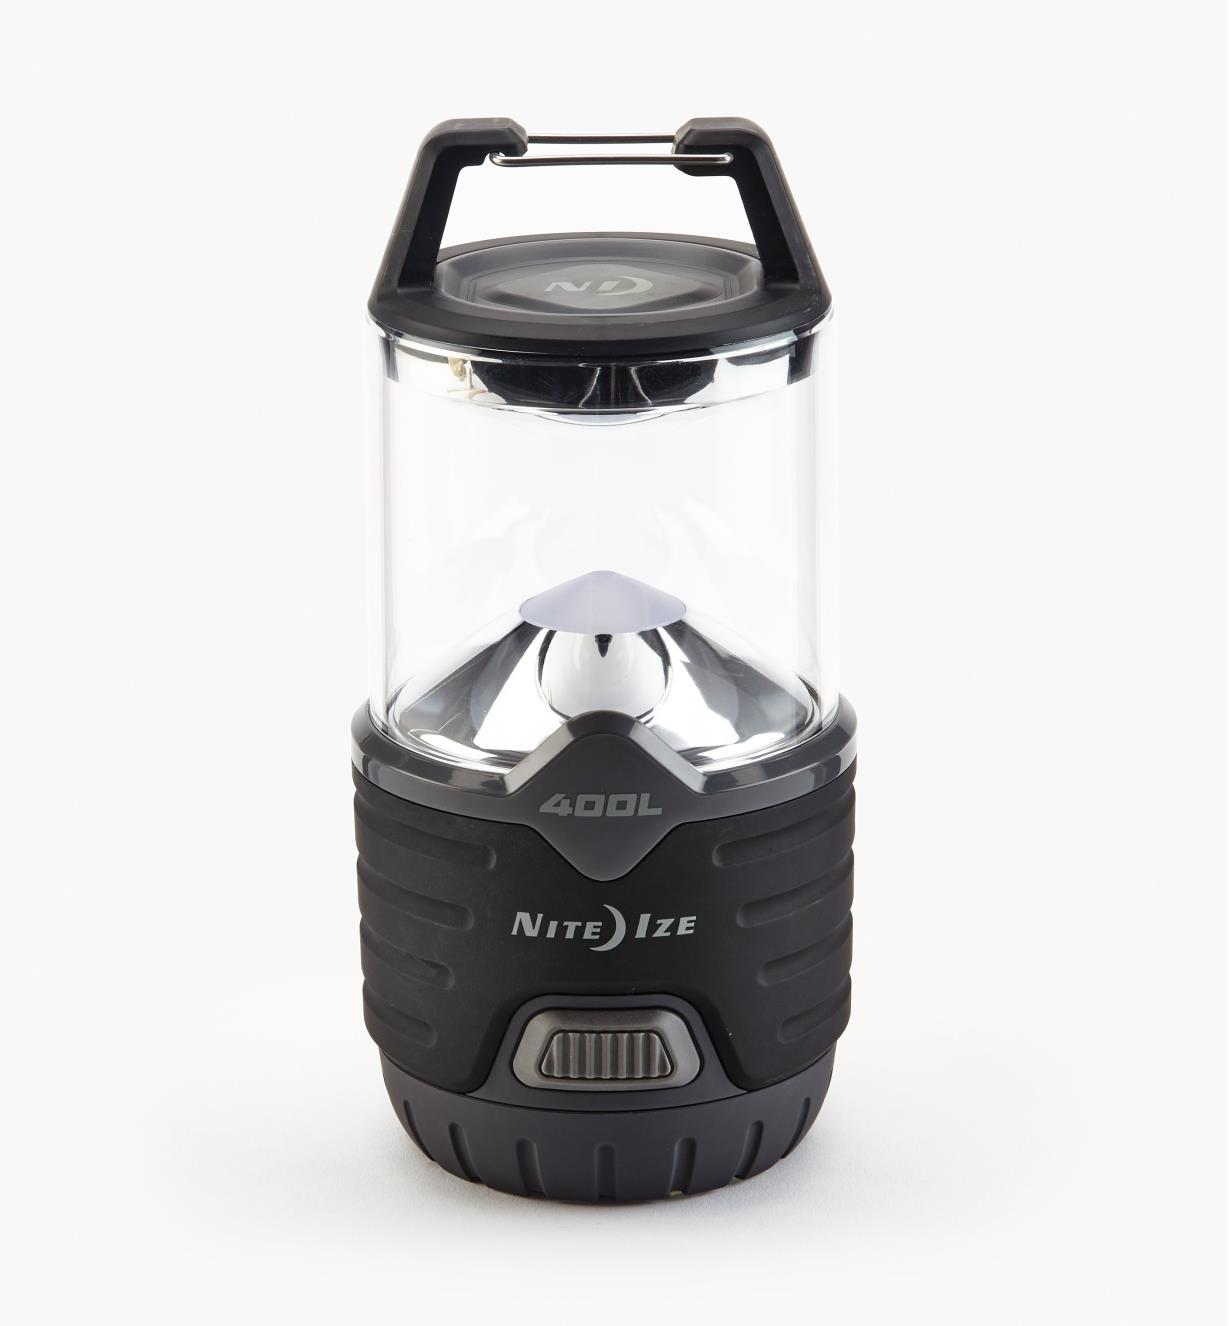 68K0910 - 400 lm Nite Ize Battery-Powered Radiant Lantern